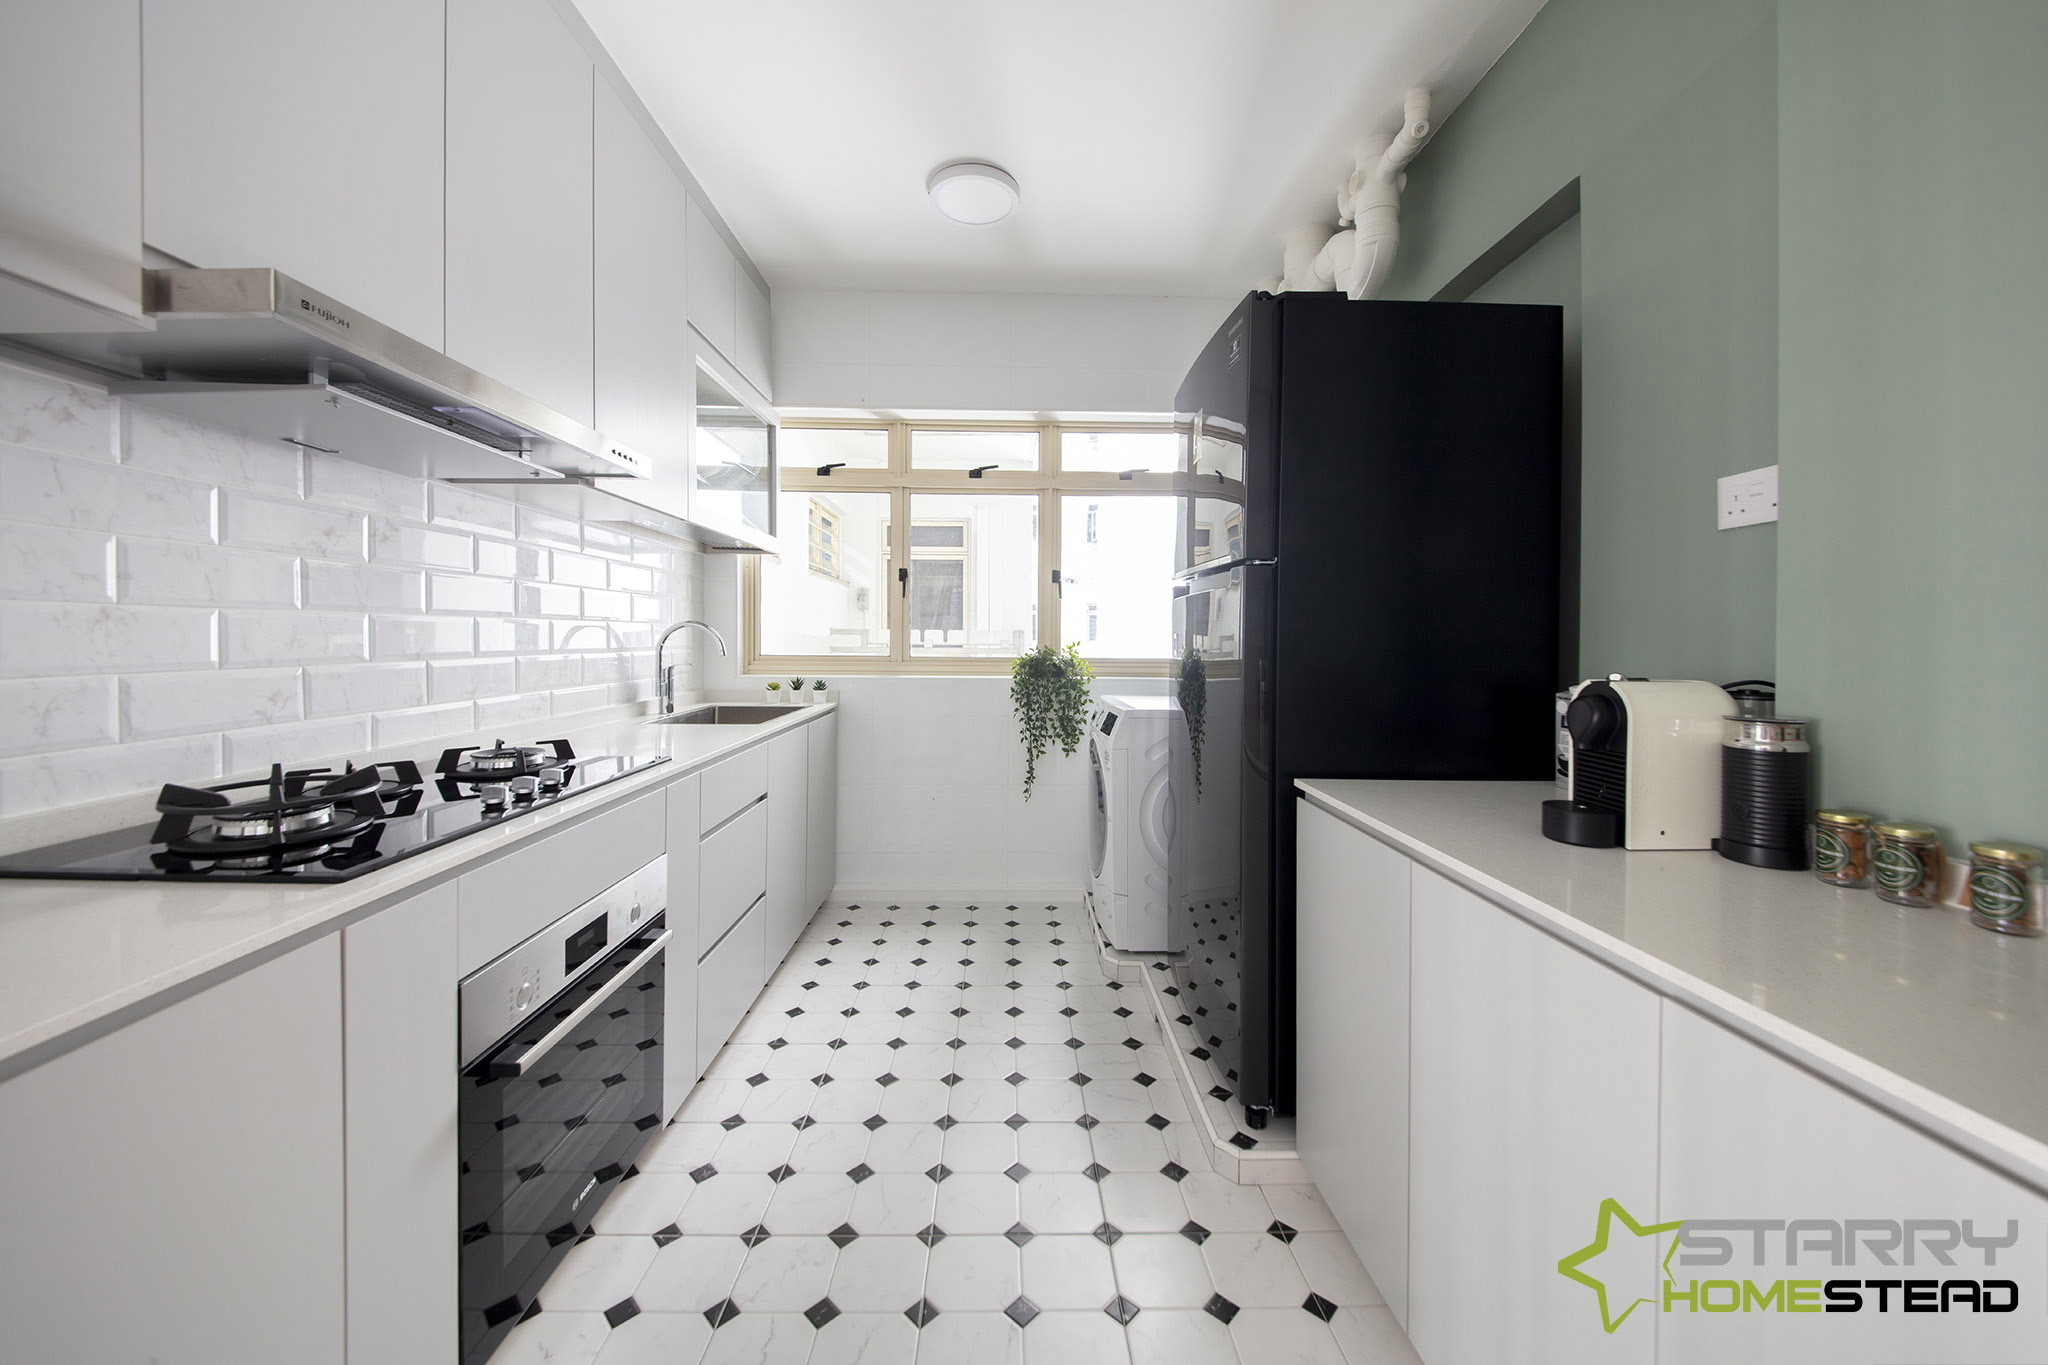 9 Stunning HDB Kitchen Designs to Drool Over  Starry Homestead